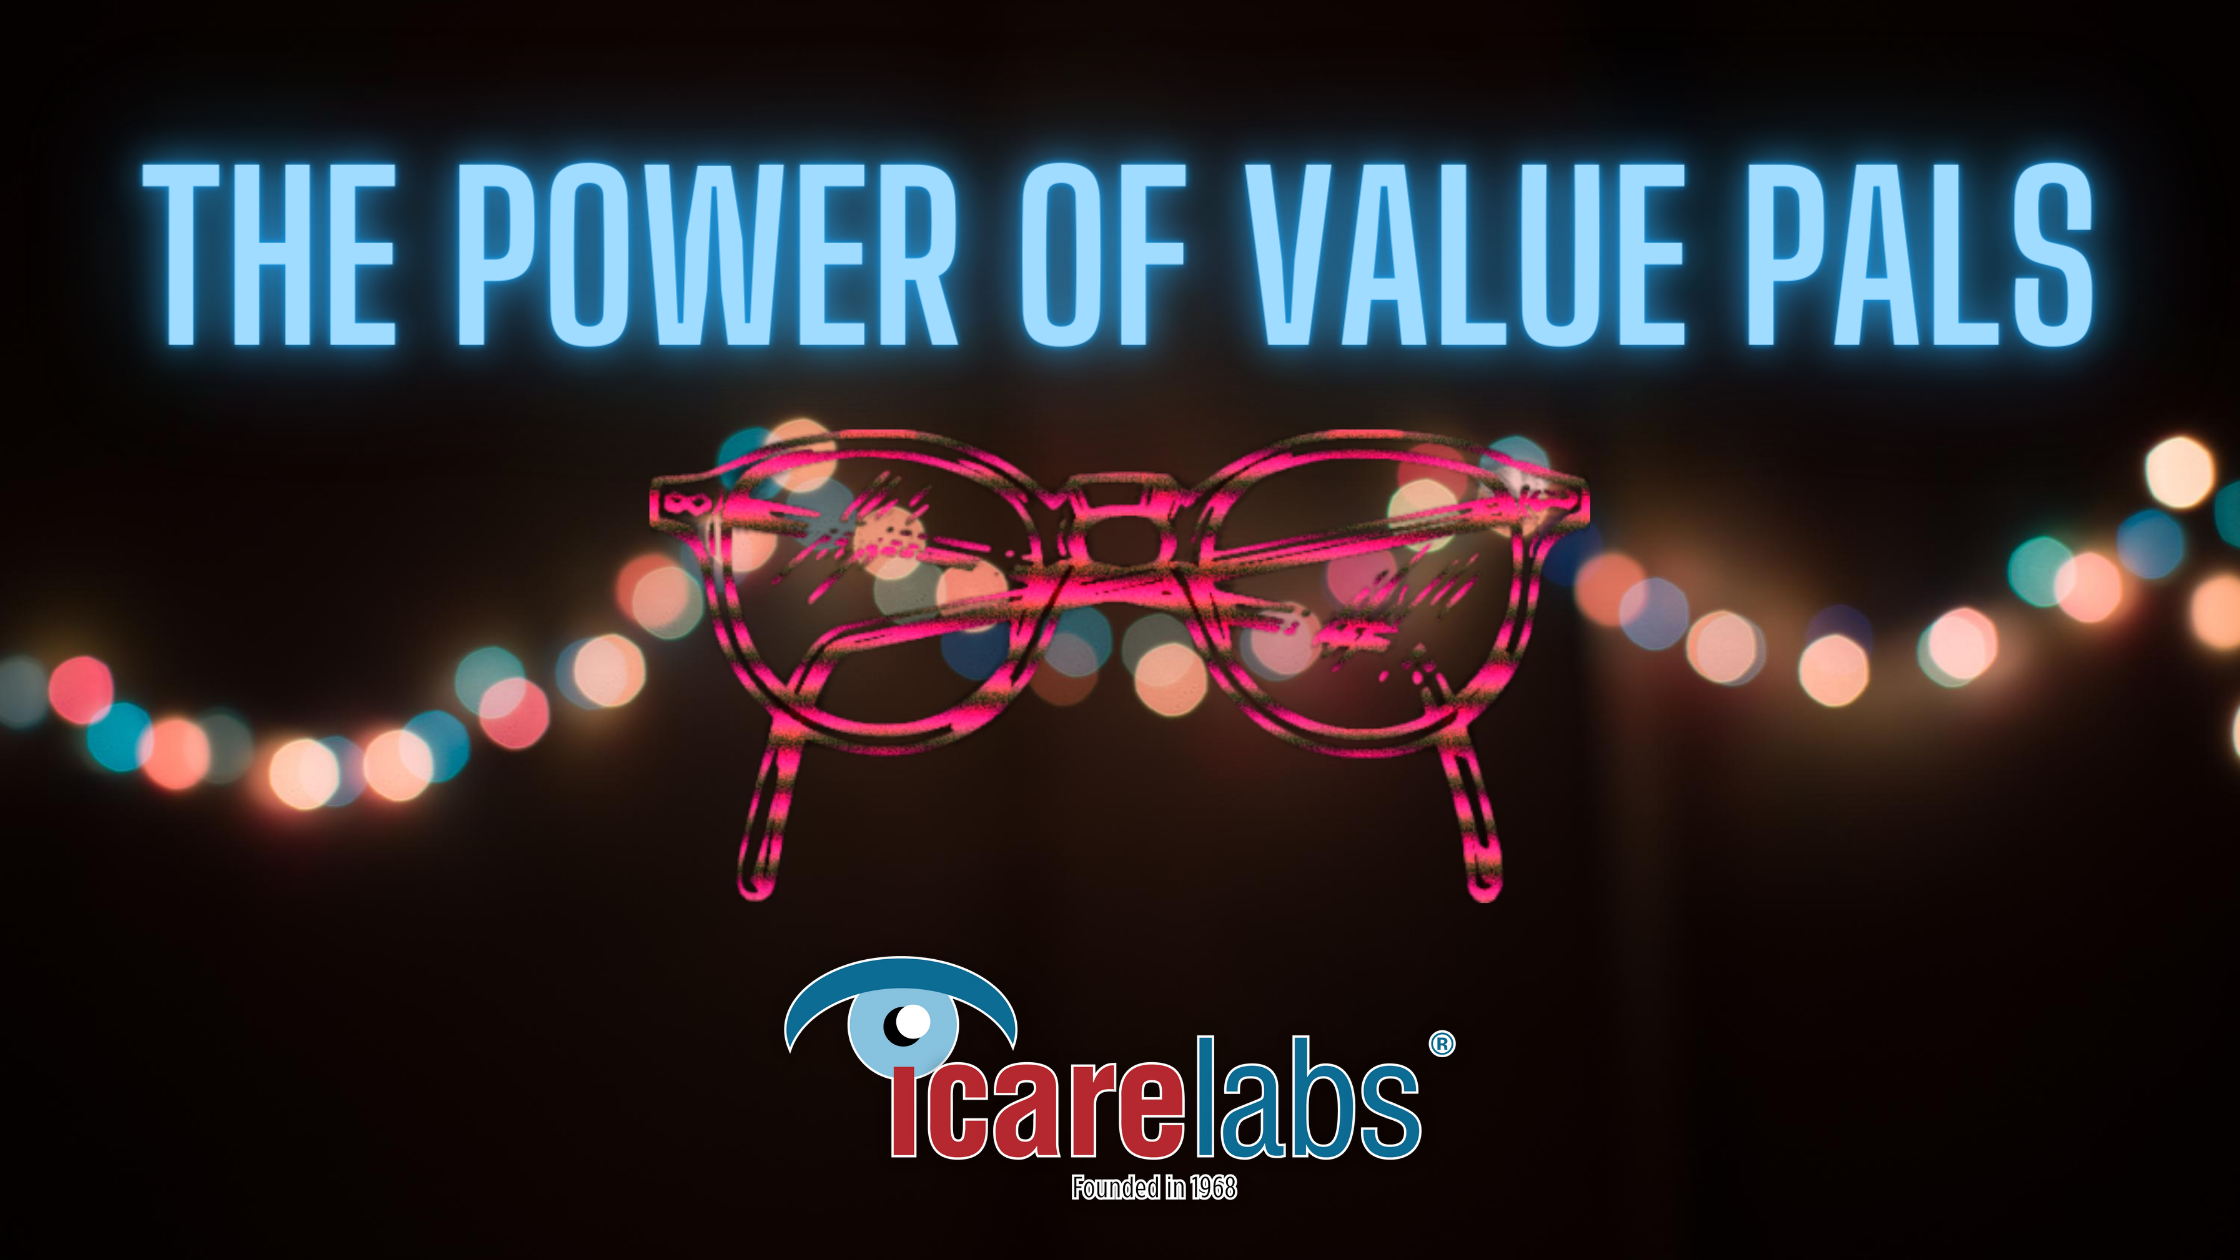 The Power of Value PALs